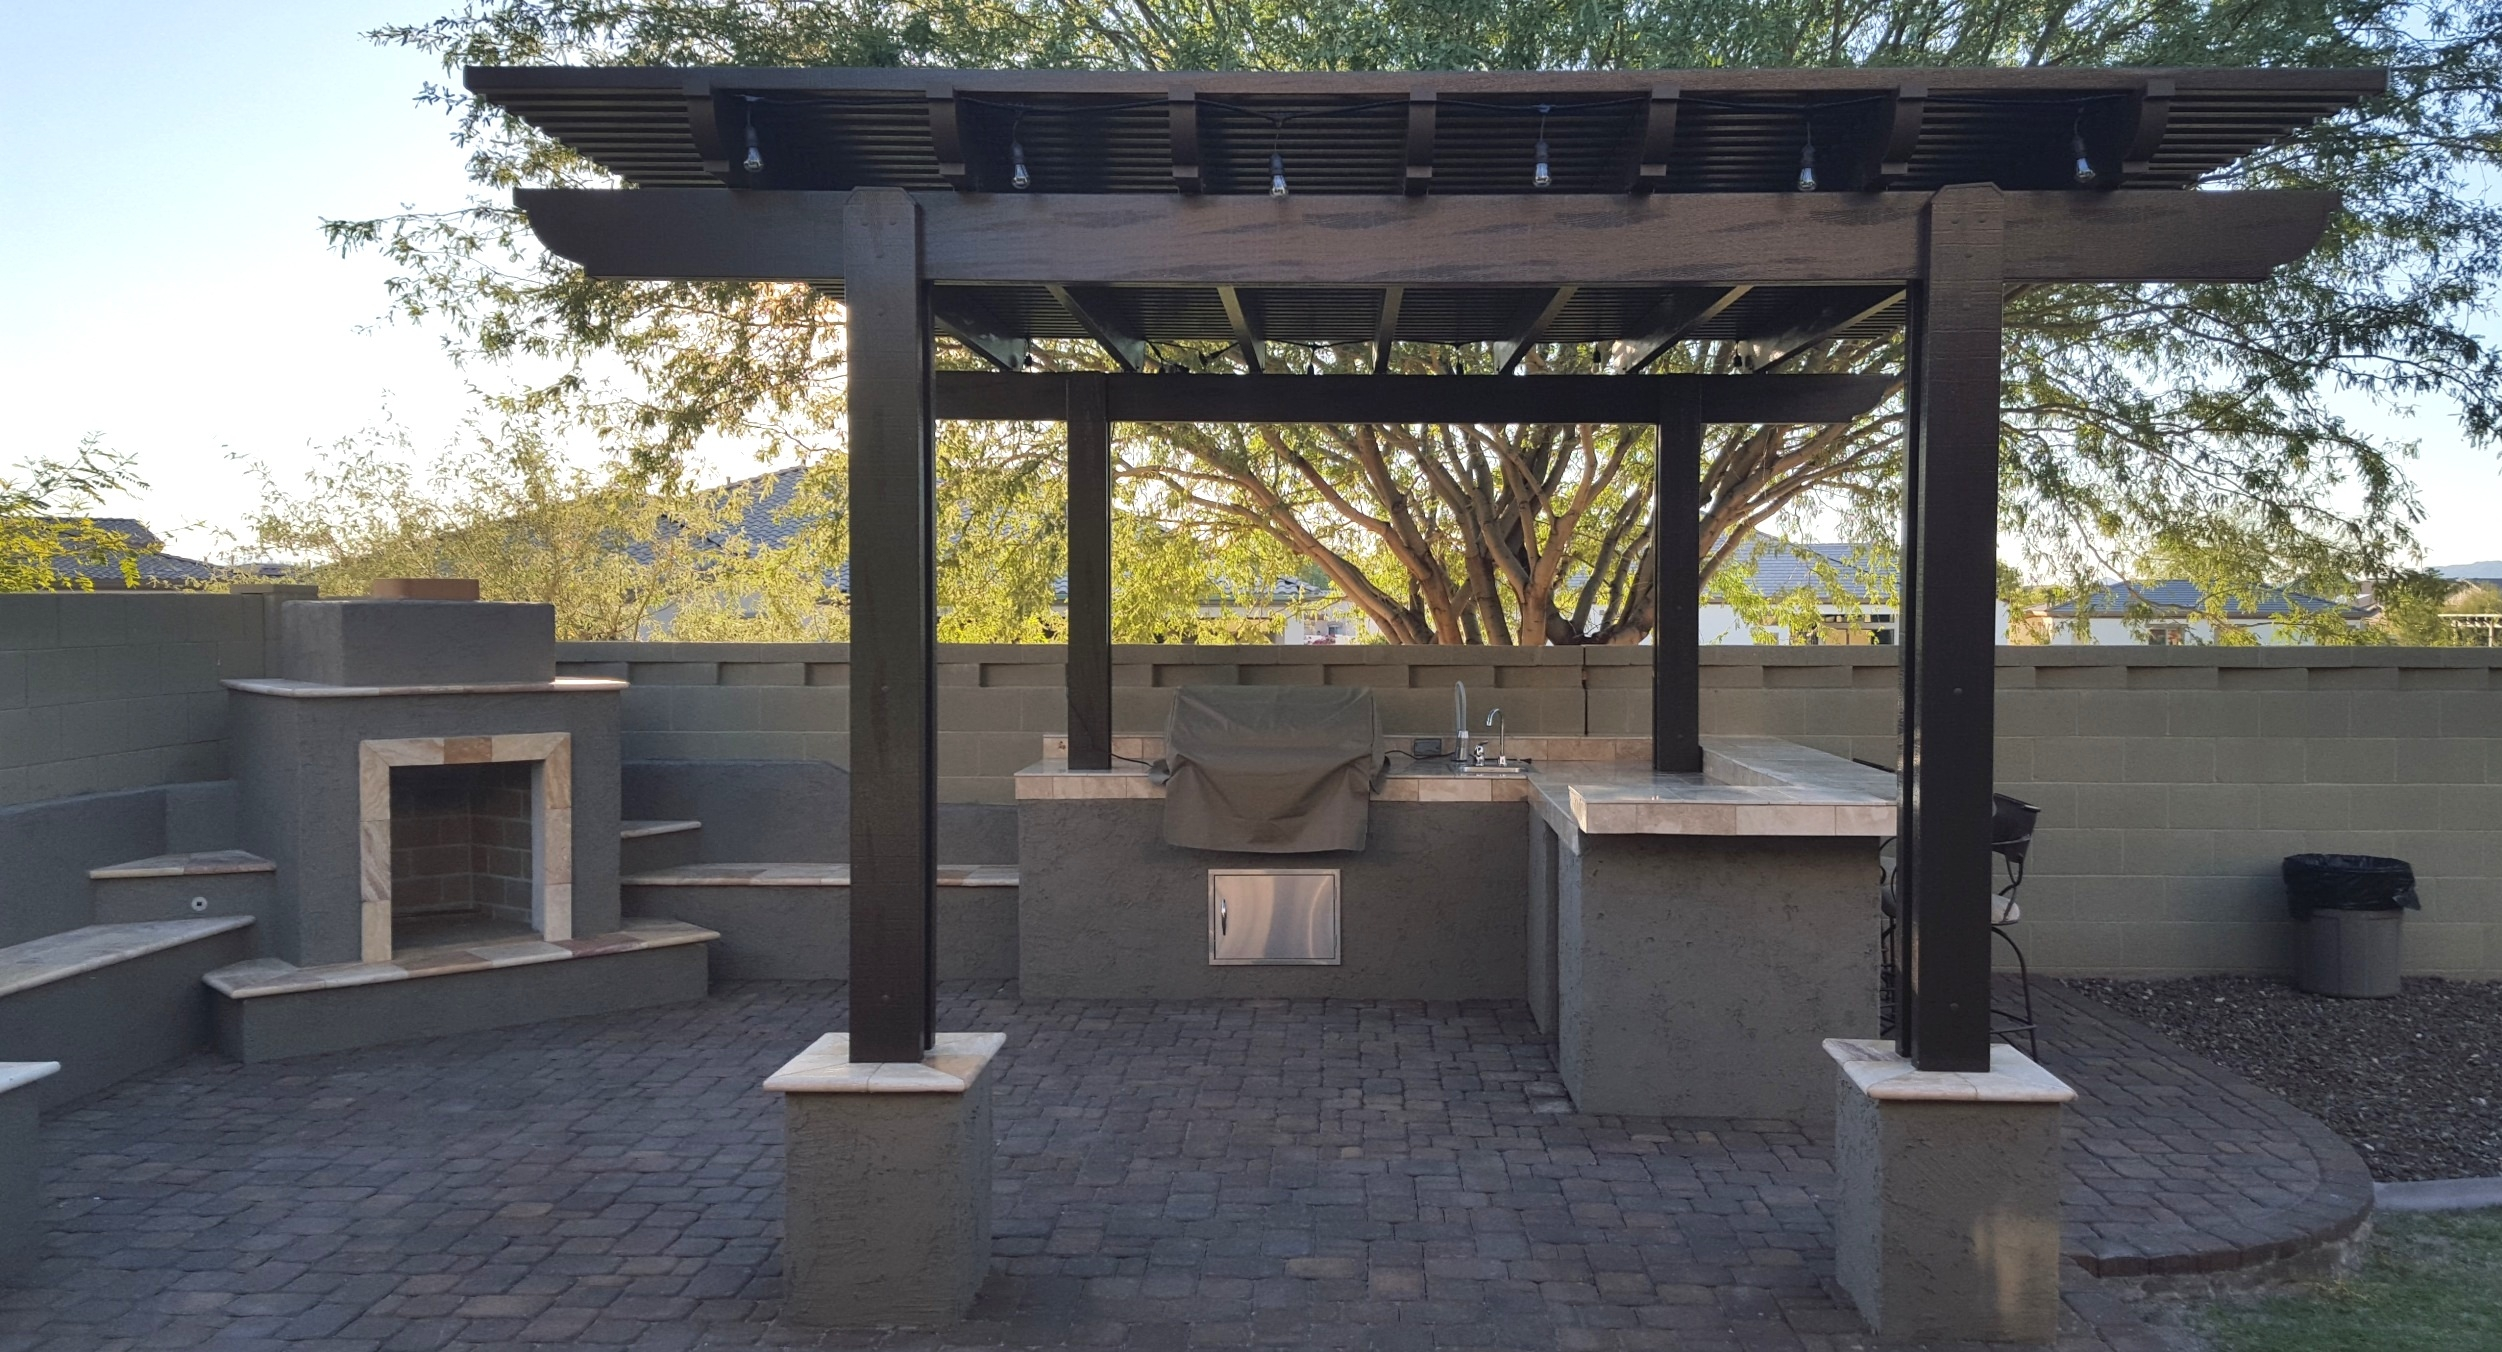 This Anthem landscape design by includes an outdoor living space with fireplace and small outdoor kitchen with a bar beneath a trellis ramada.